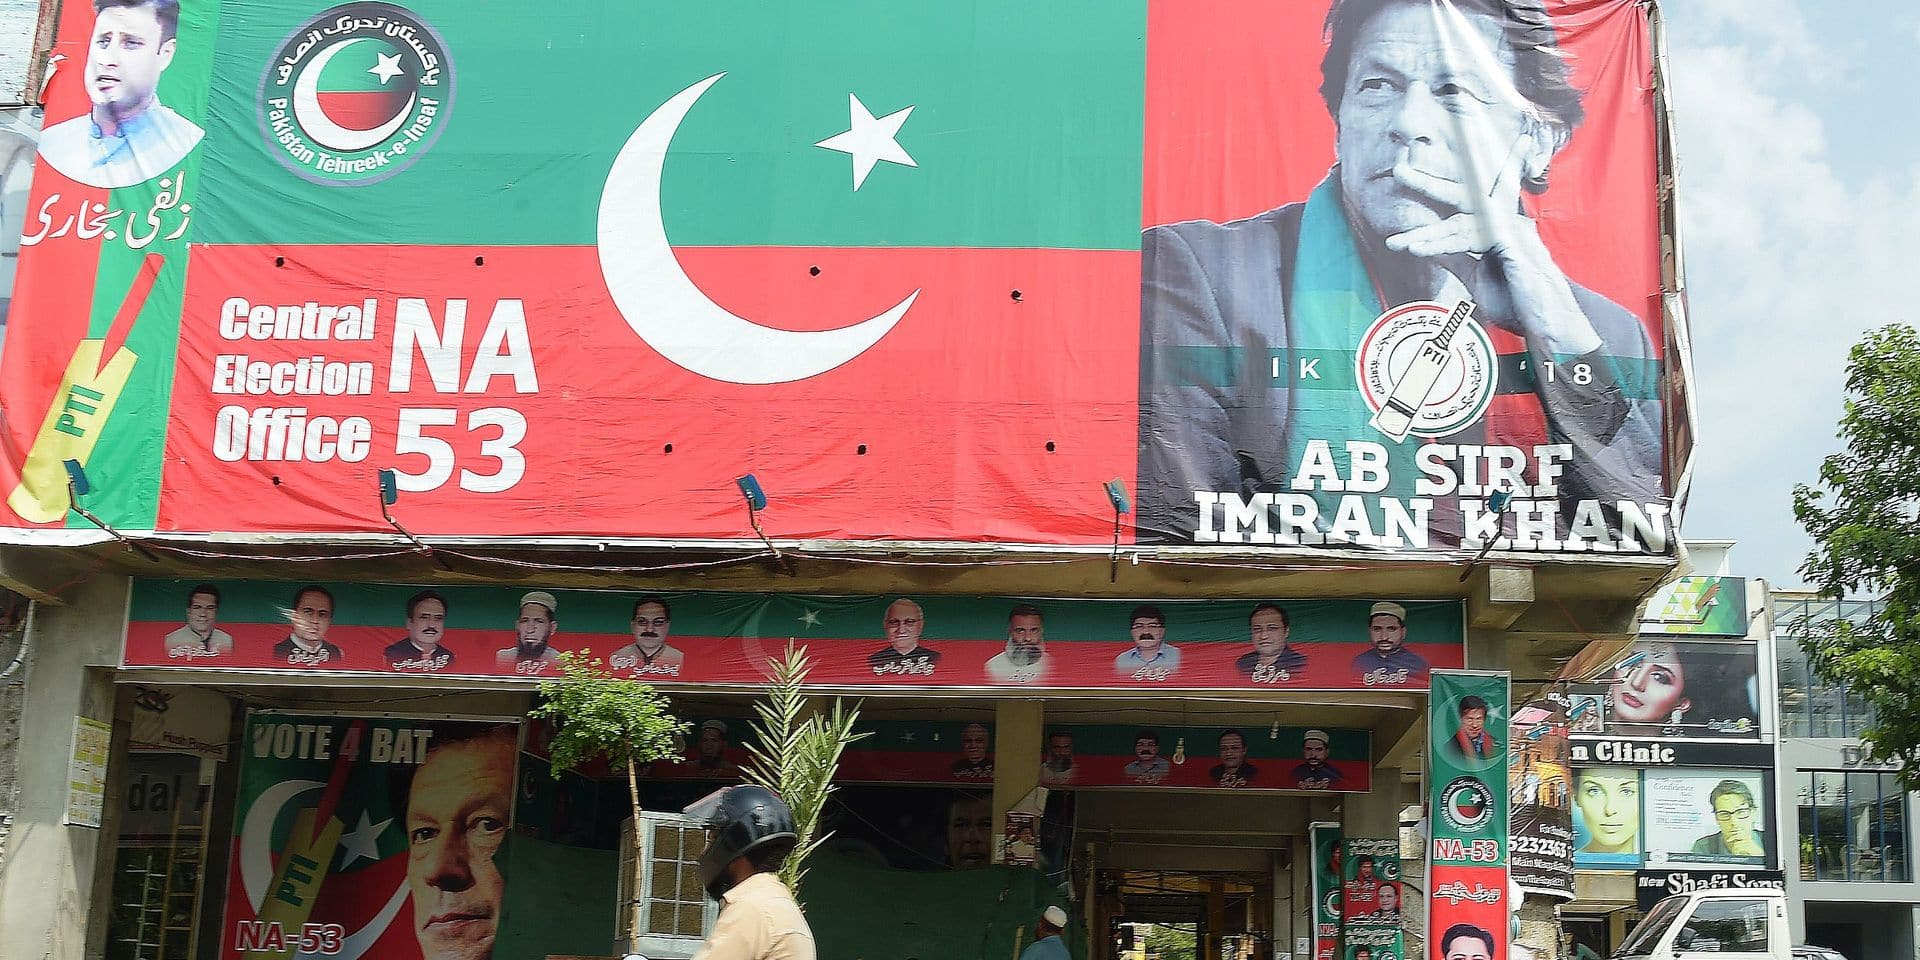 "TOPSHOT - A Pakistani motorcyclist rides past a billboard featuring an image of Pakistan's cricketer-turned politician Imran Khan, head of the Pakistan Tehreek-e-Insaf (Movement for Justice) party, a day after the general election in Islamabad on July 26, 2018. Pakistan woke to electoral chaos on July 26 with the outgoing ruling party denouncing ""blatant rigging"" in the pivotal general election and rejecting unofficial, partial results suggesting victory for former cricket champion Imran Khan. / AFP PHOTO / AAMIR QURESHI"